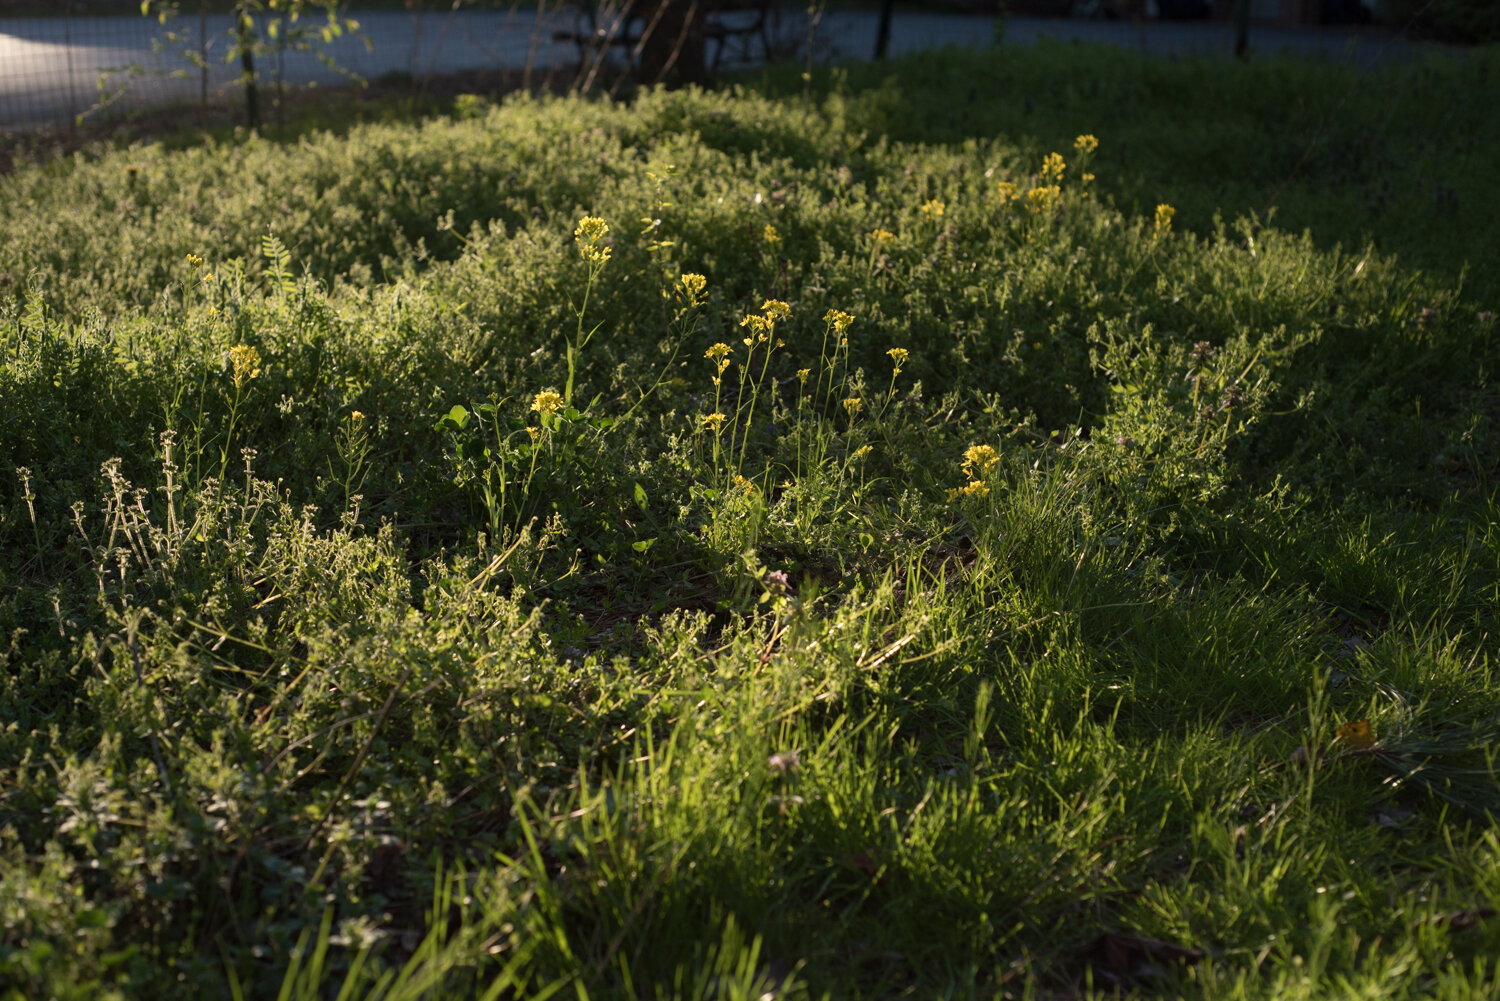 My garden space is often overcome by grass and weeds.